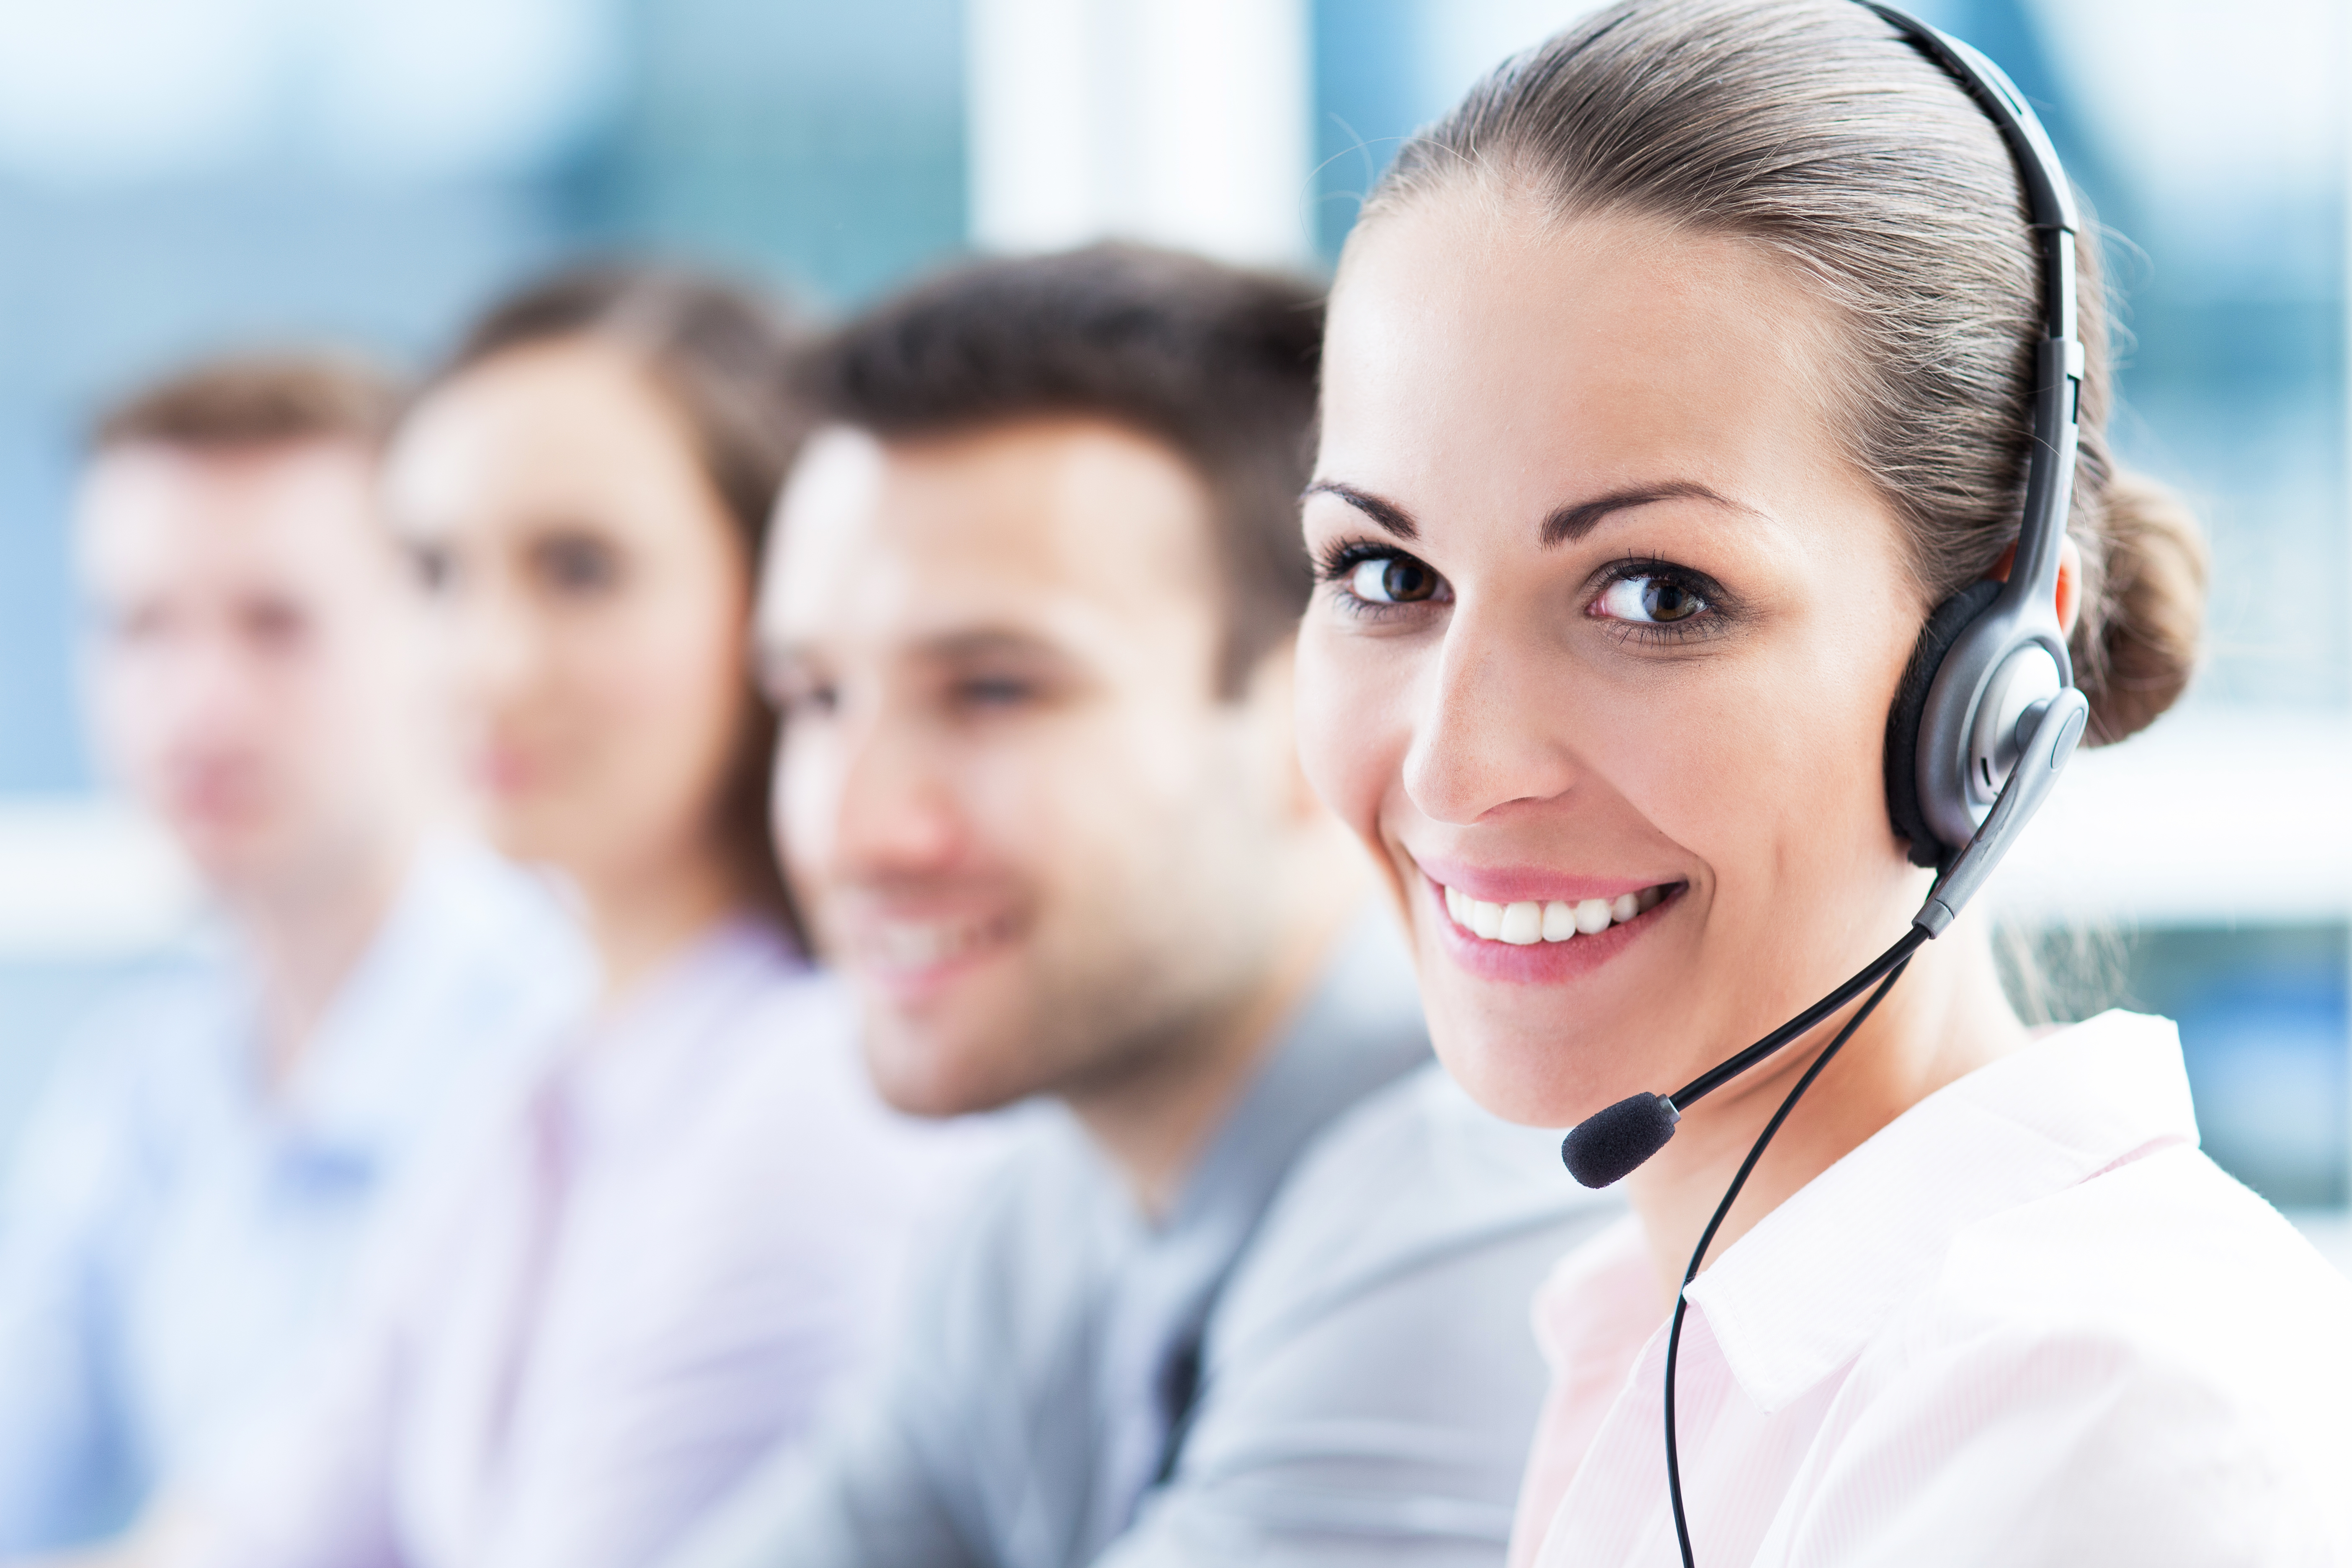 What is a Call Center? (with pictures)